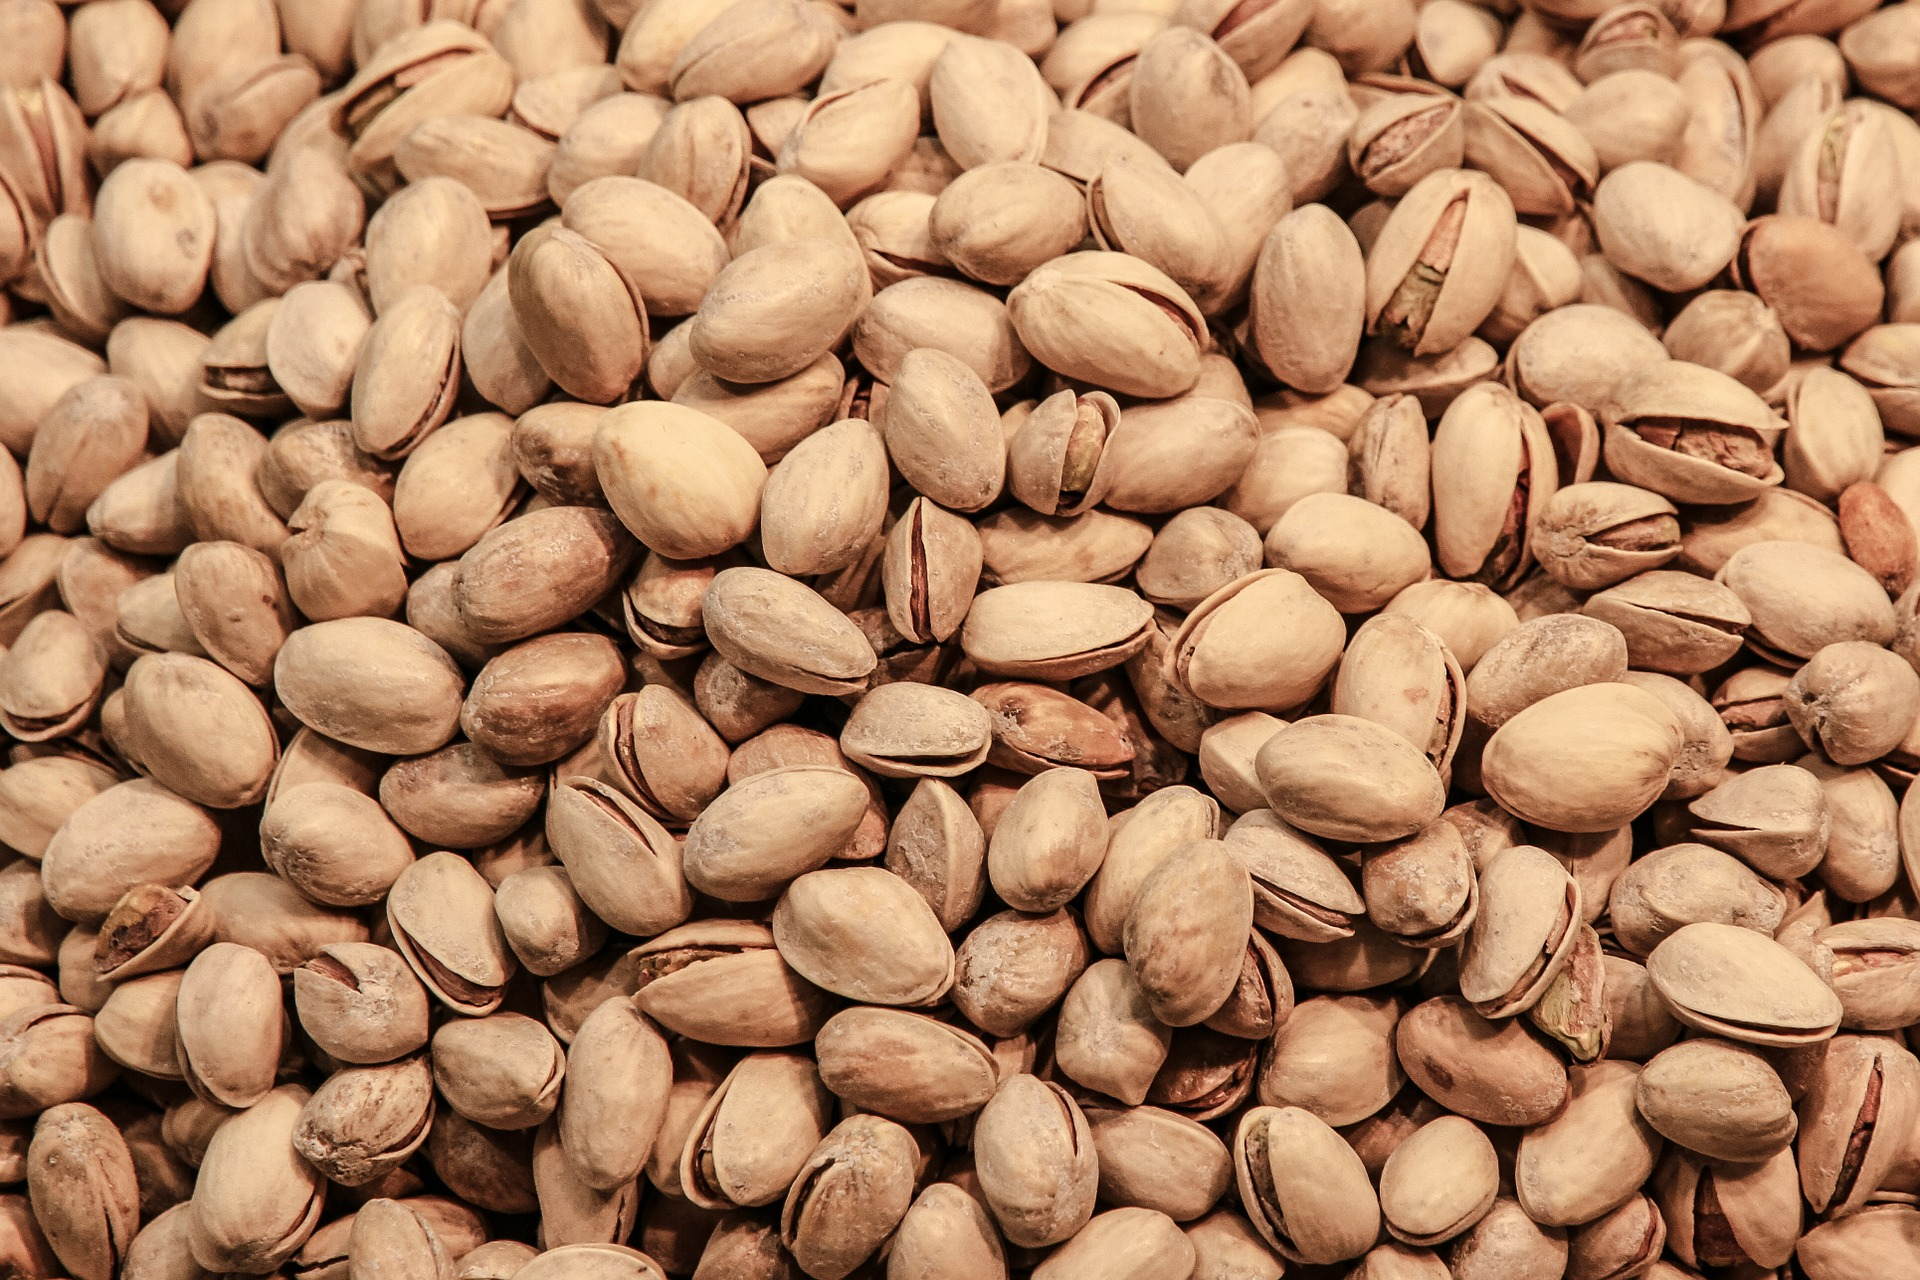 pistachios help you maintain weight